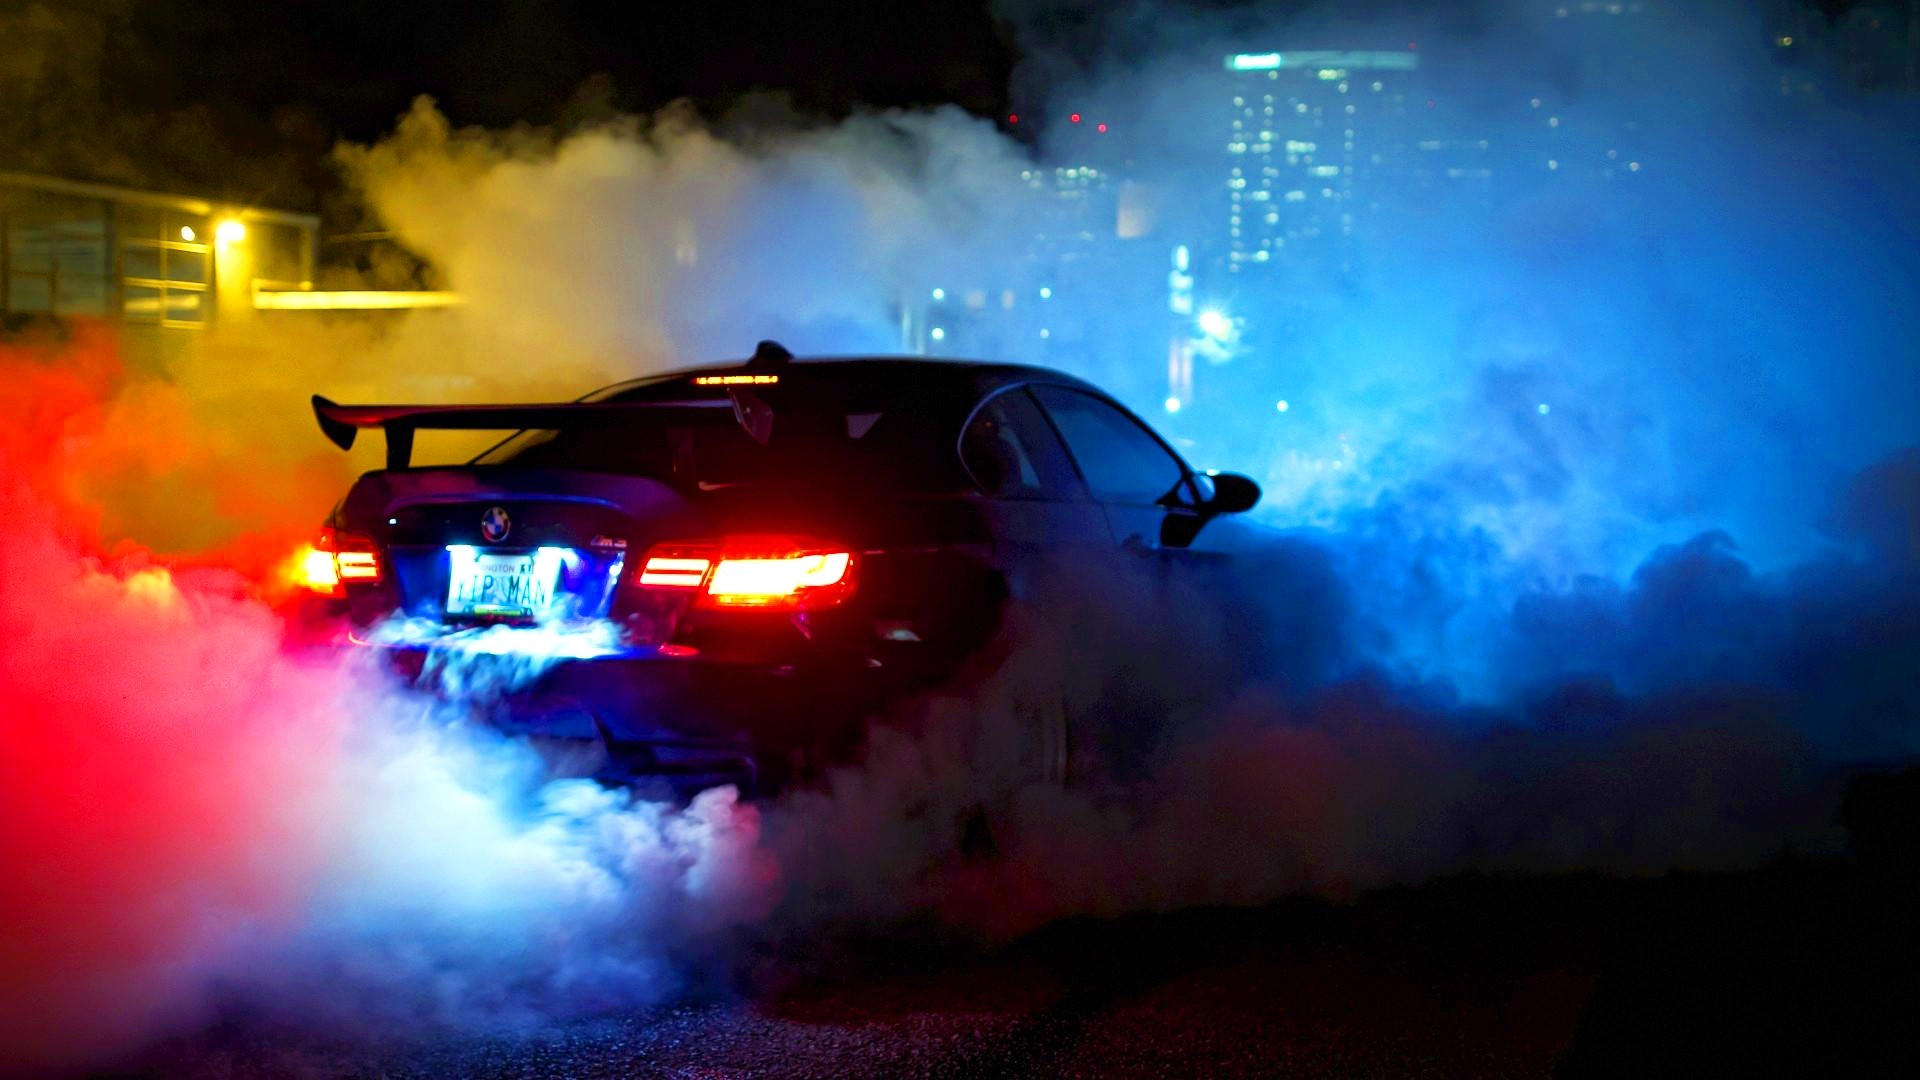 Muscle Cars Burnout Wallpapers Smoke Bmw Car Night Driving Wallpaper Cars